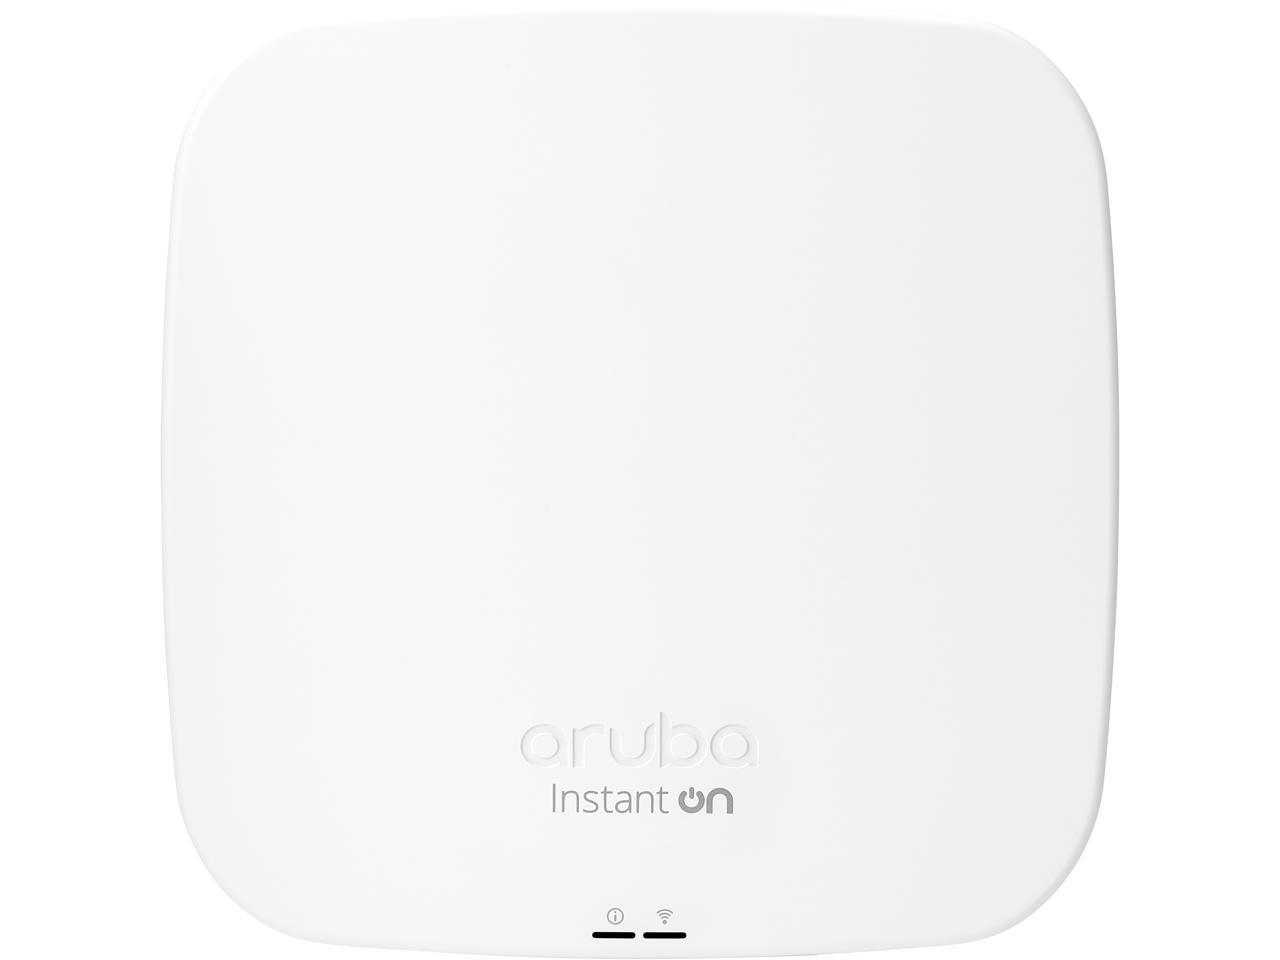 Hewlett Packard Enterprise Aruba Instant On AP15 (RW) + OfficeConnect 1420 8G PoE+ (64W) WLAN access point 2033 Mbit/s Power over Ethernet (PoE) White